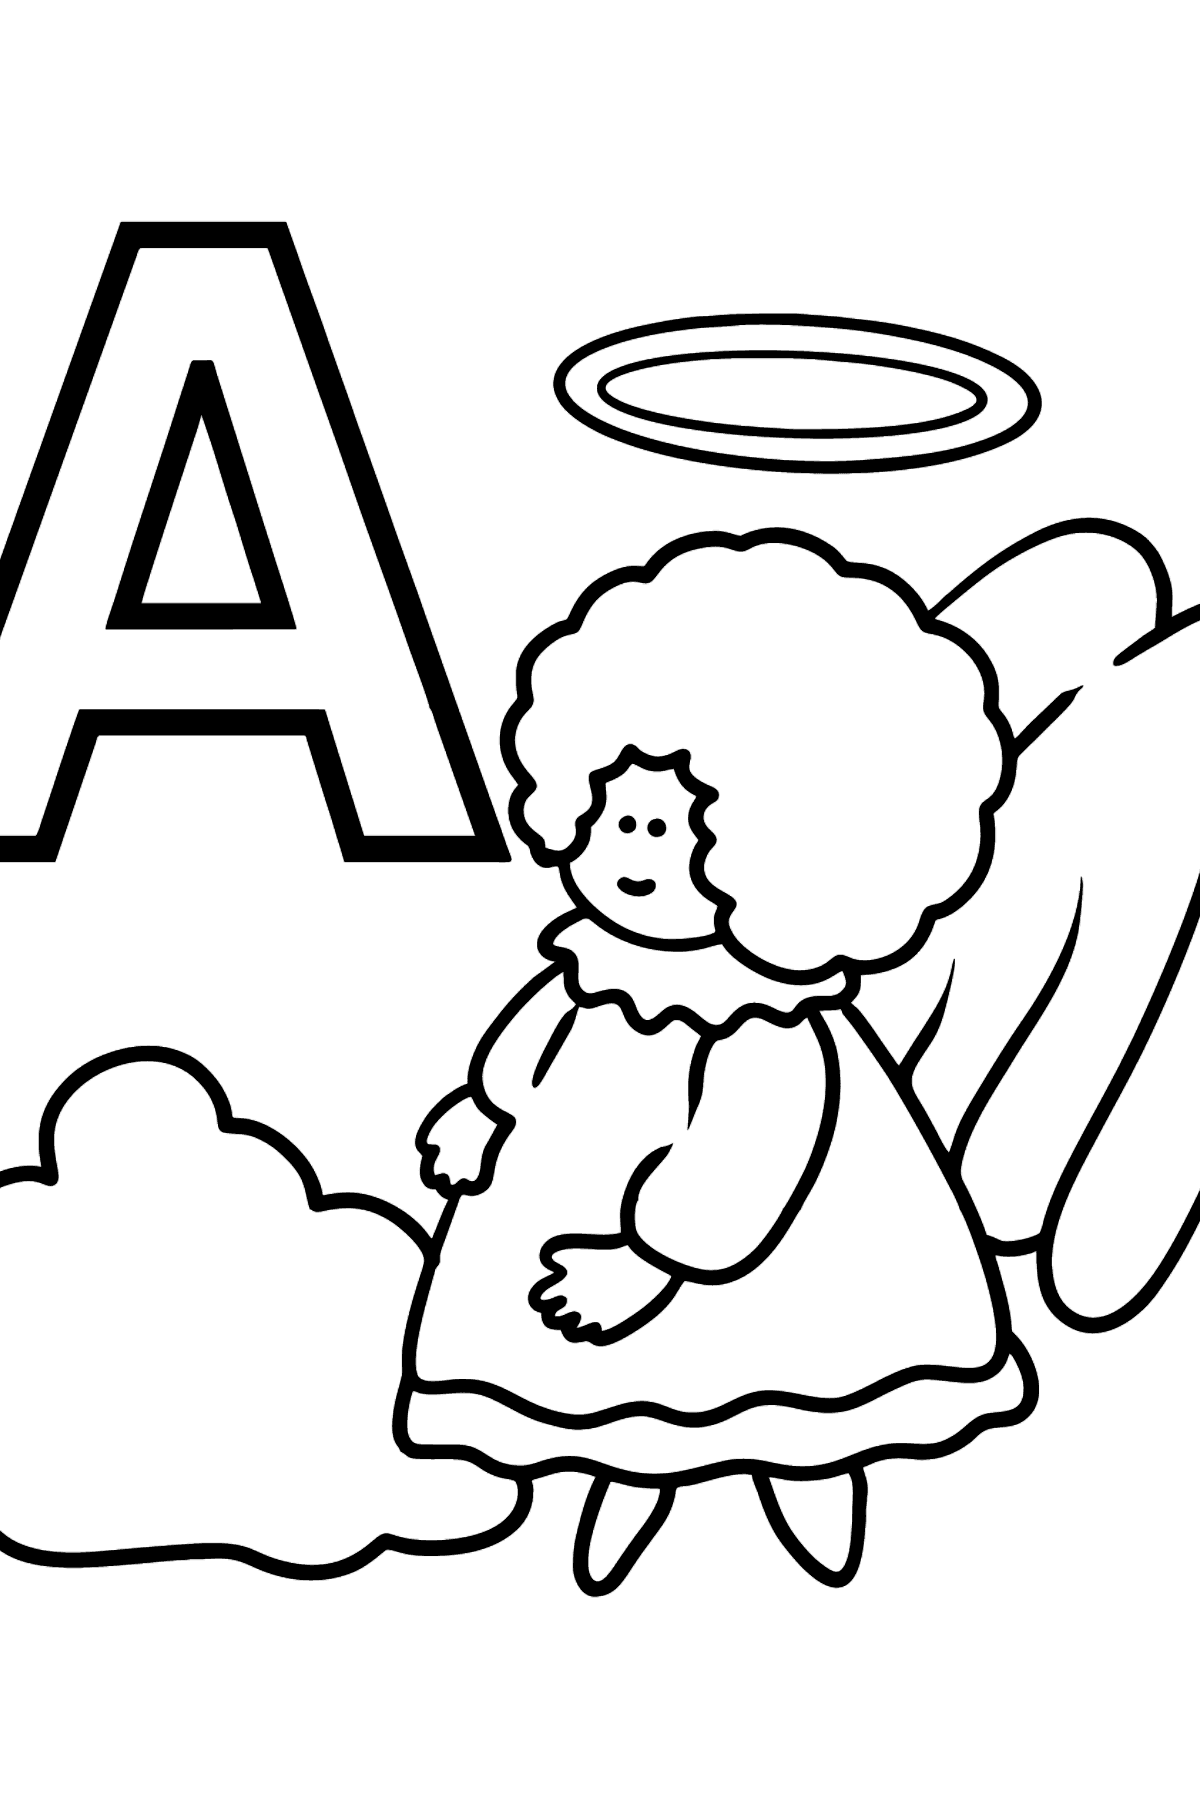 English Letter A coloring pages - ANGEL - Coloring Pages for Kids